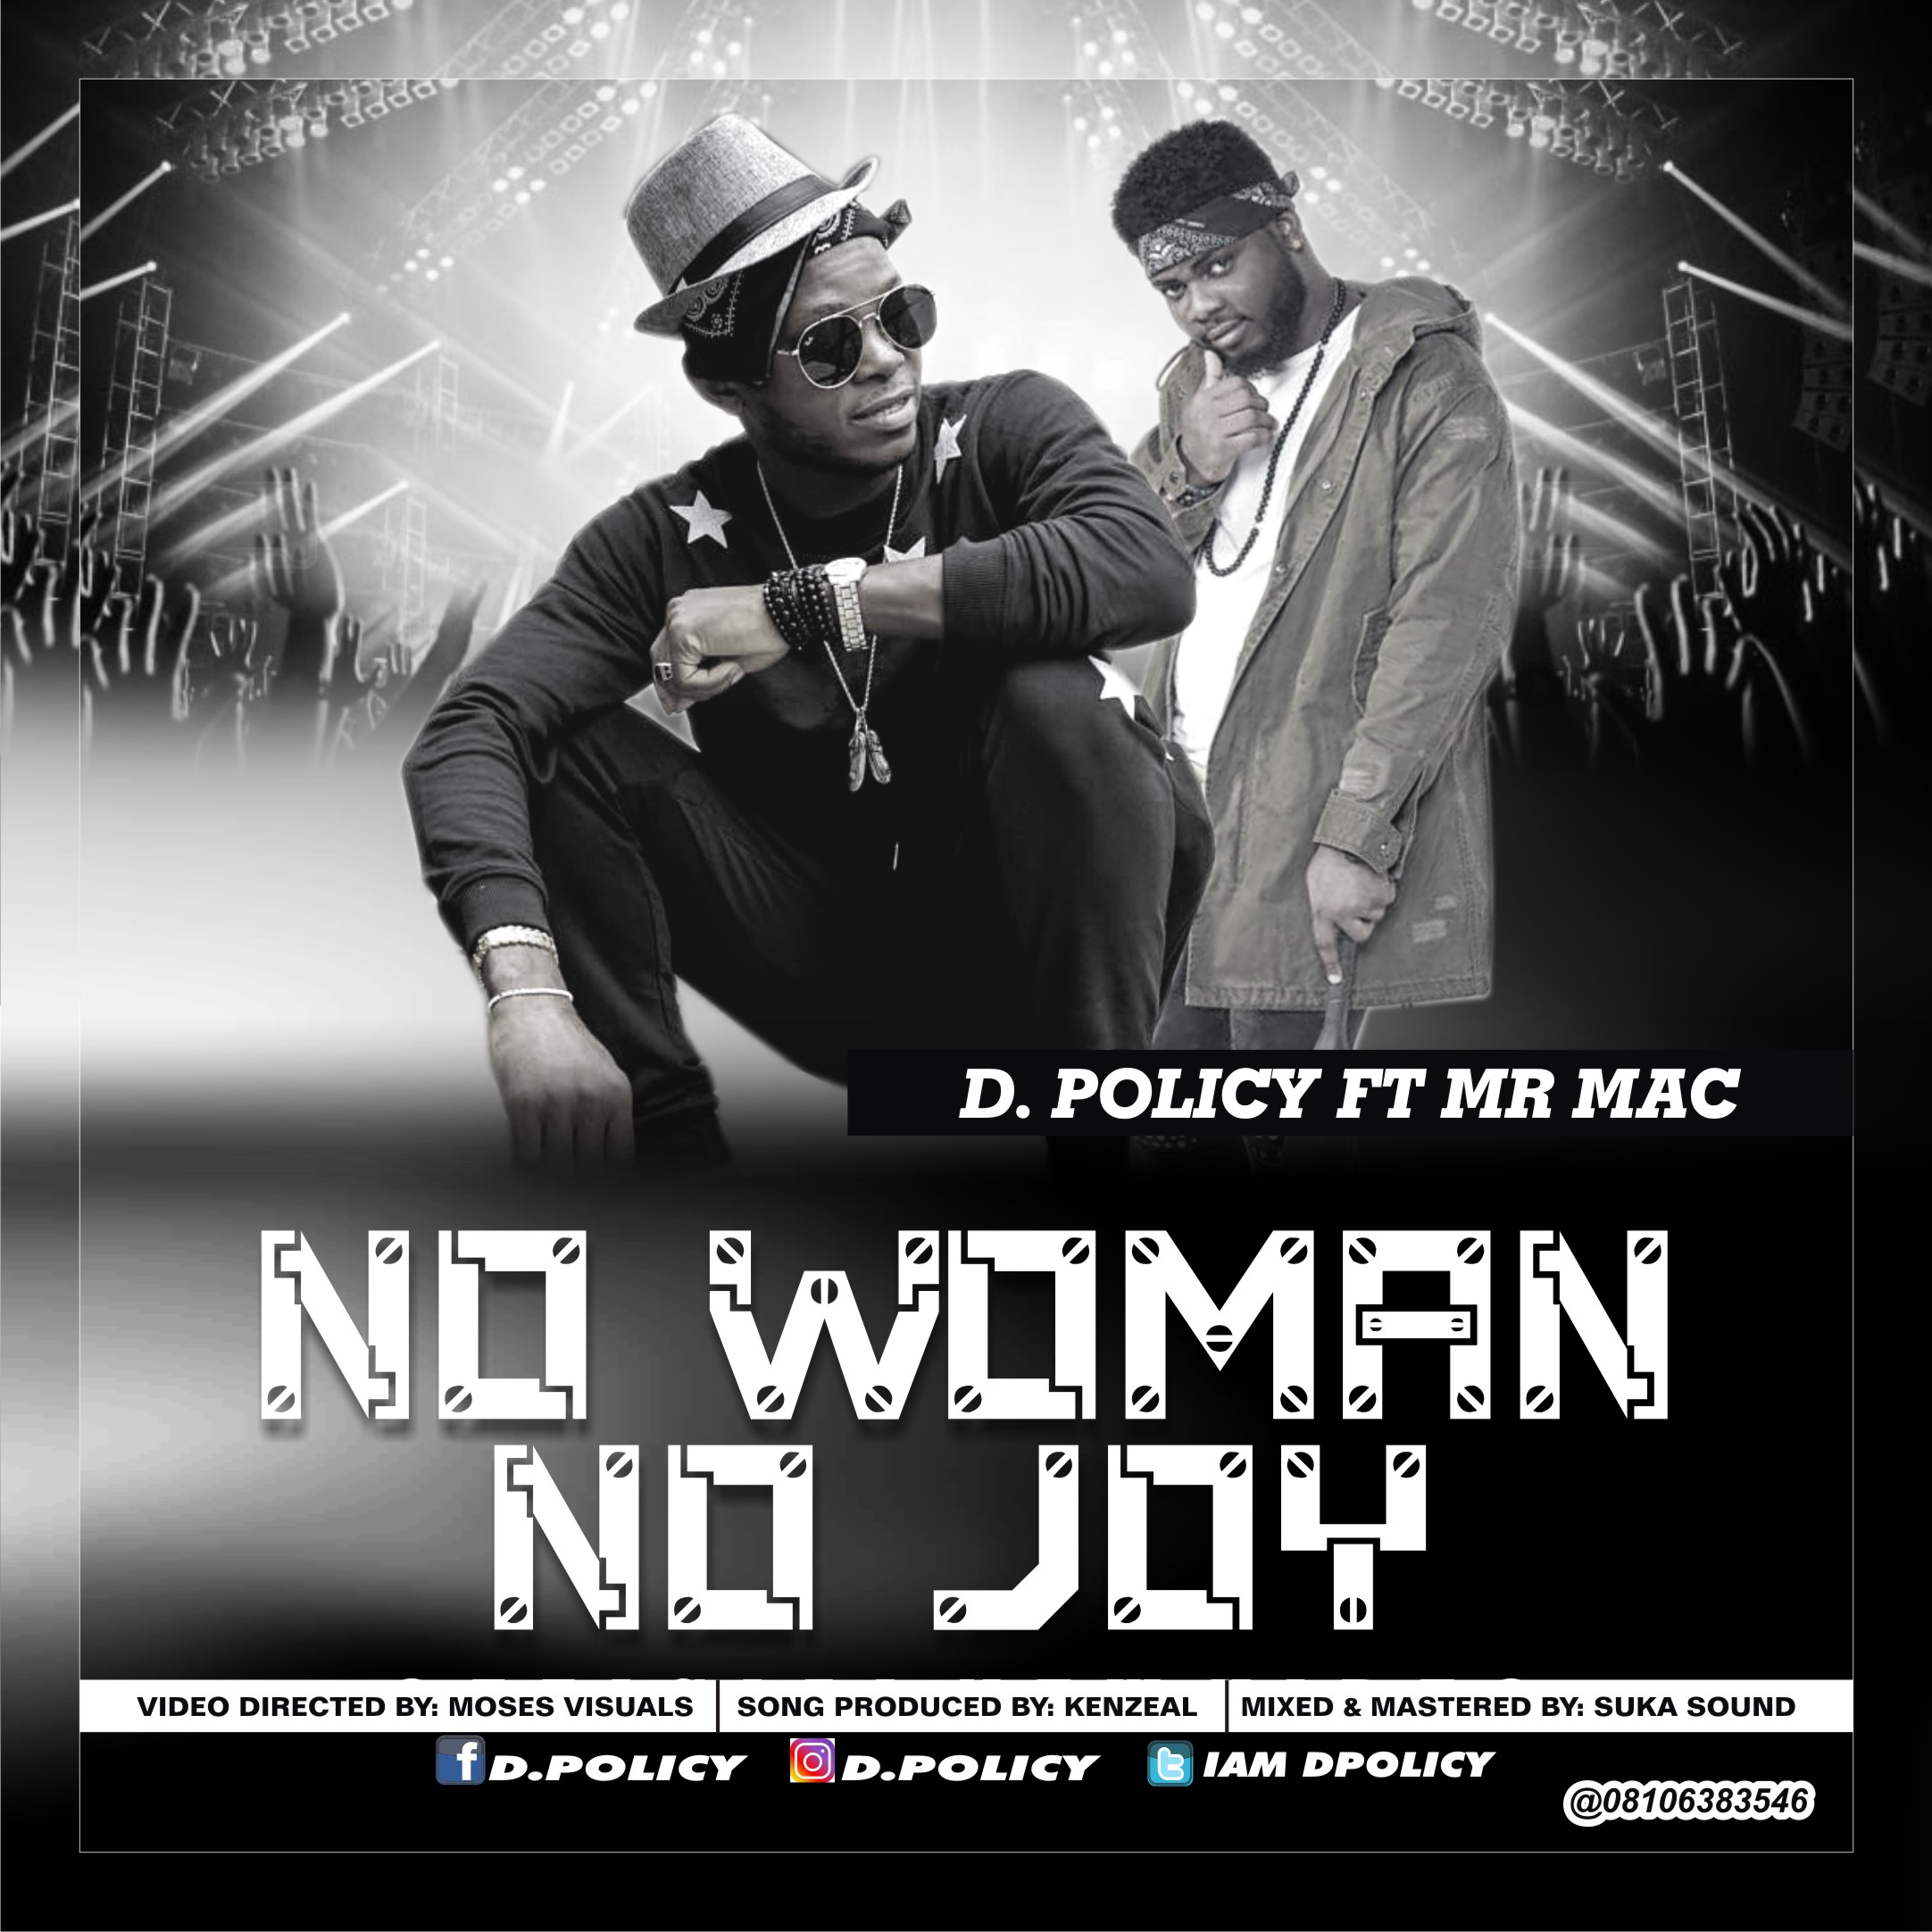 Video: D.Policy Ft Mr Mac – No woman, No Joy